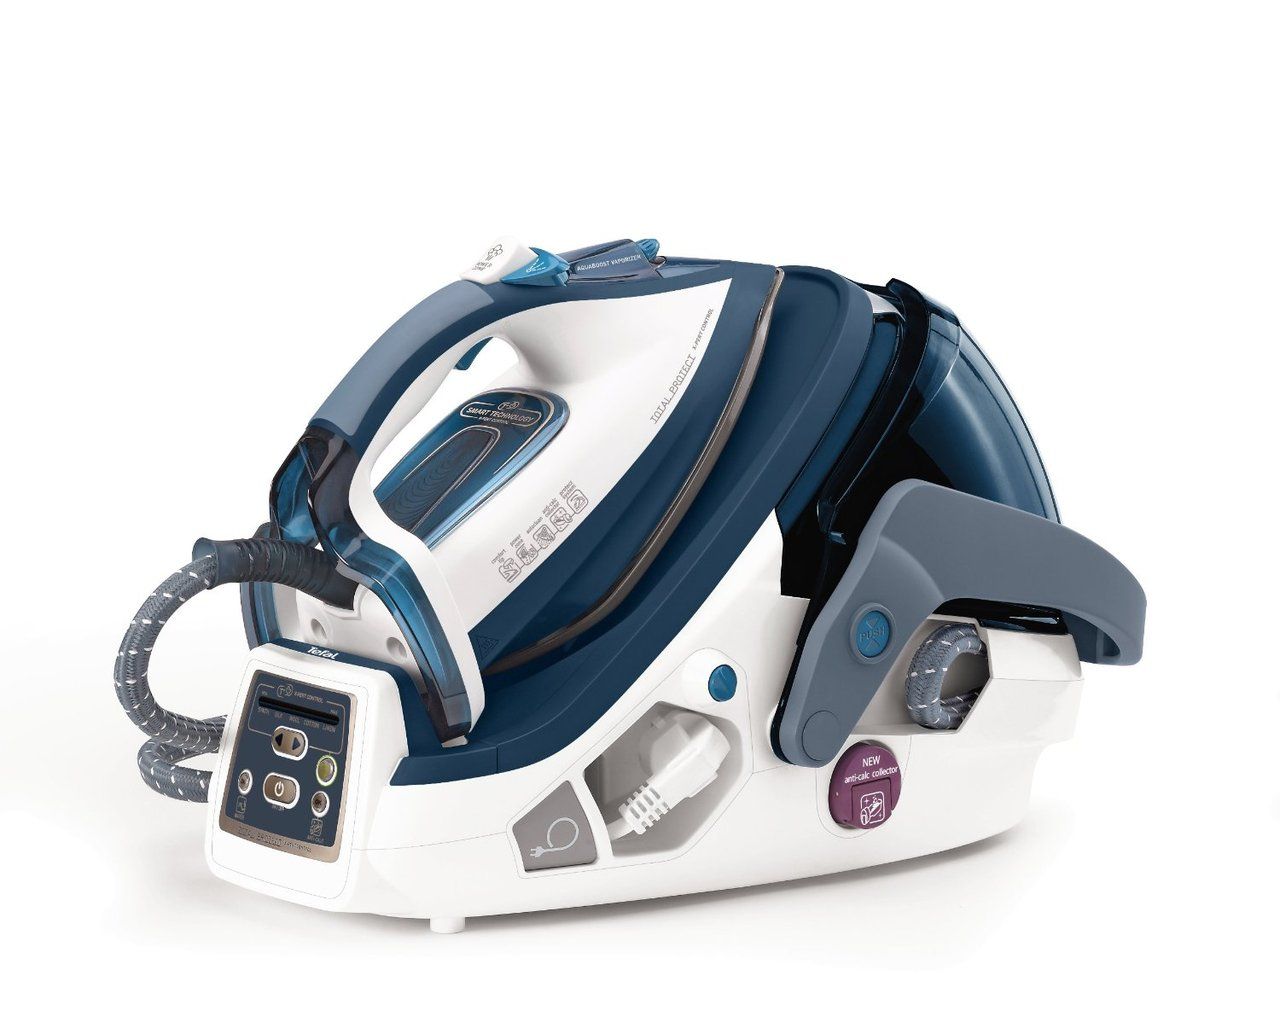 Tefal GV8980 Total Protect XPert Control Steam Generator Iron